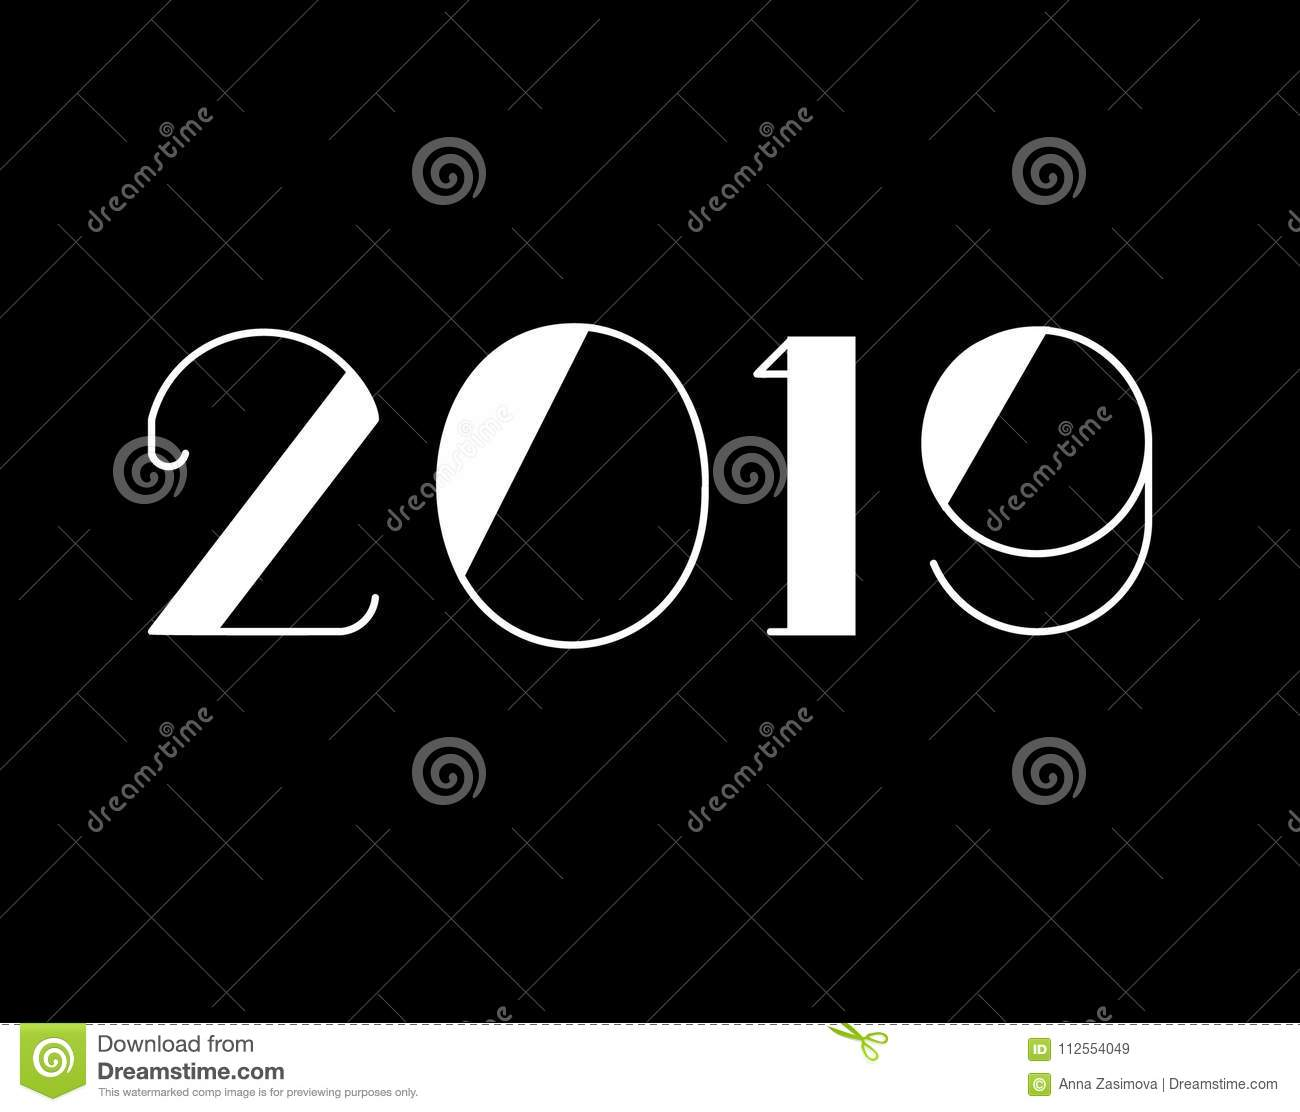 2019 happy new year text design vector illustration banner with 2019 numbers on black background